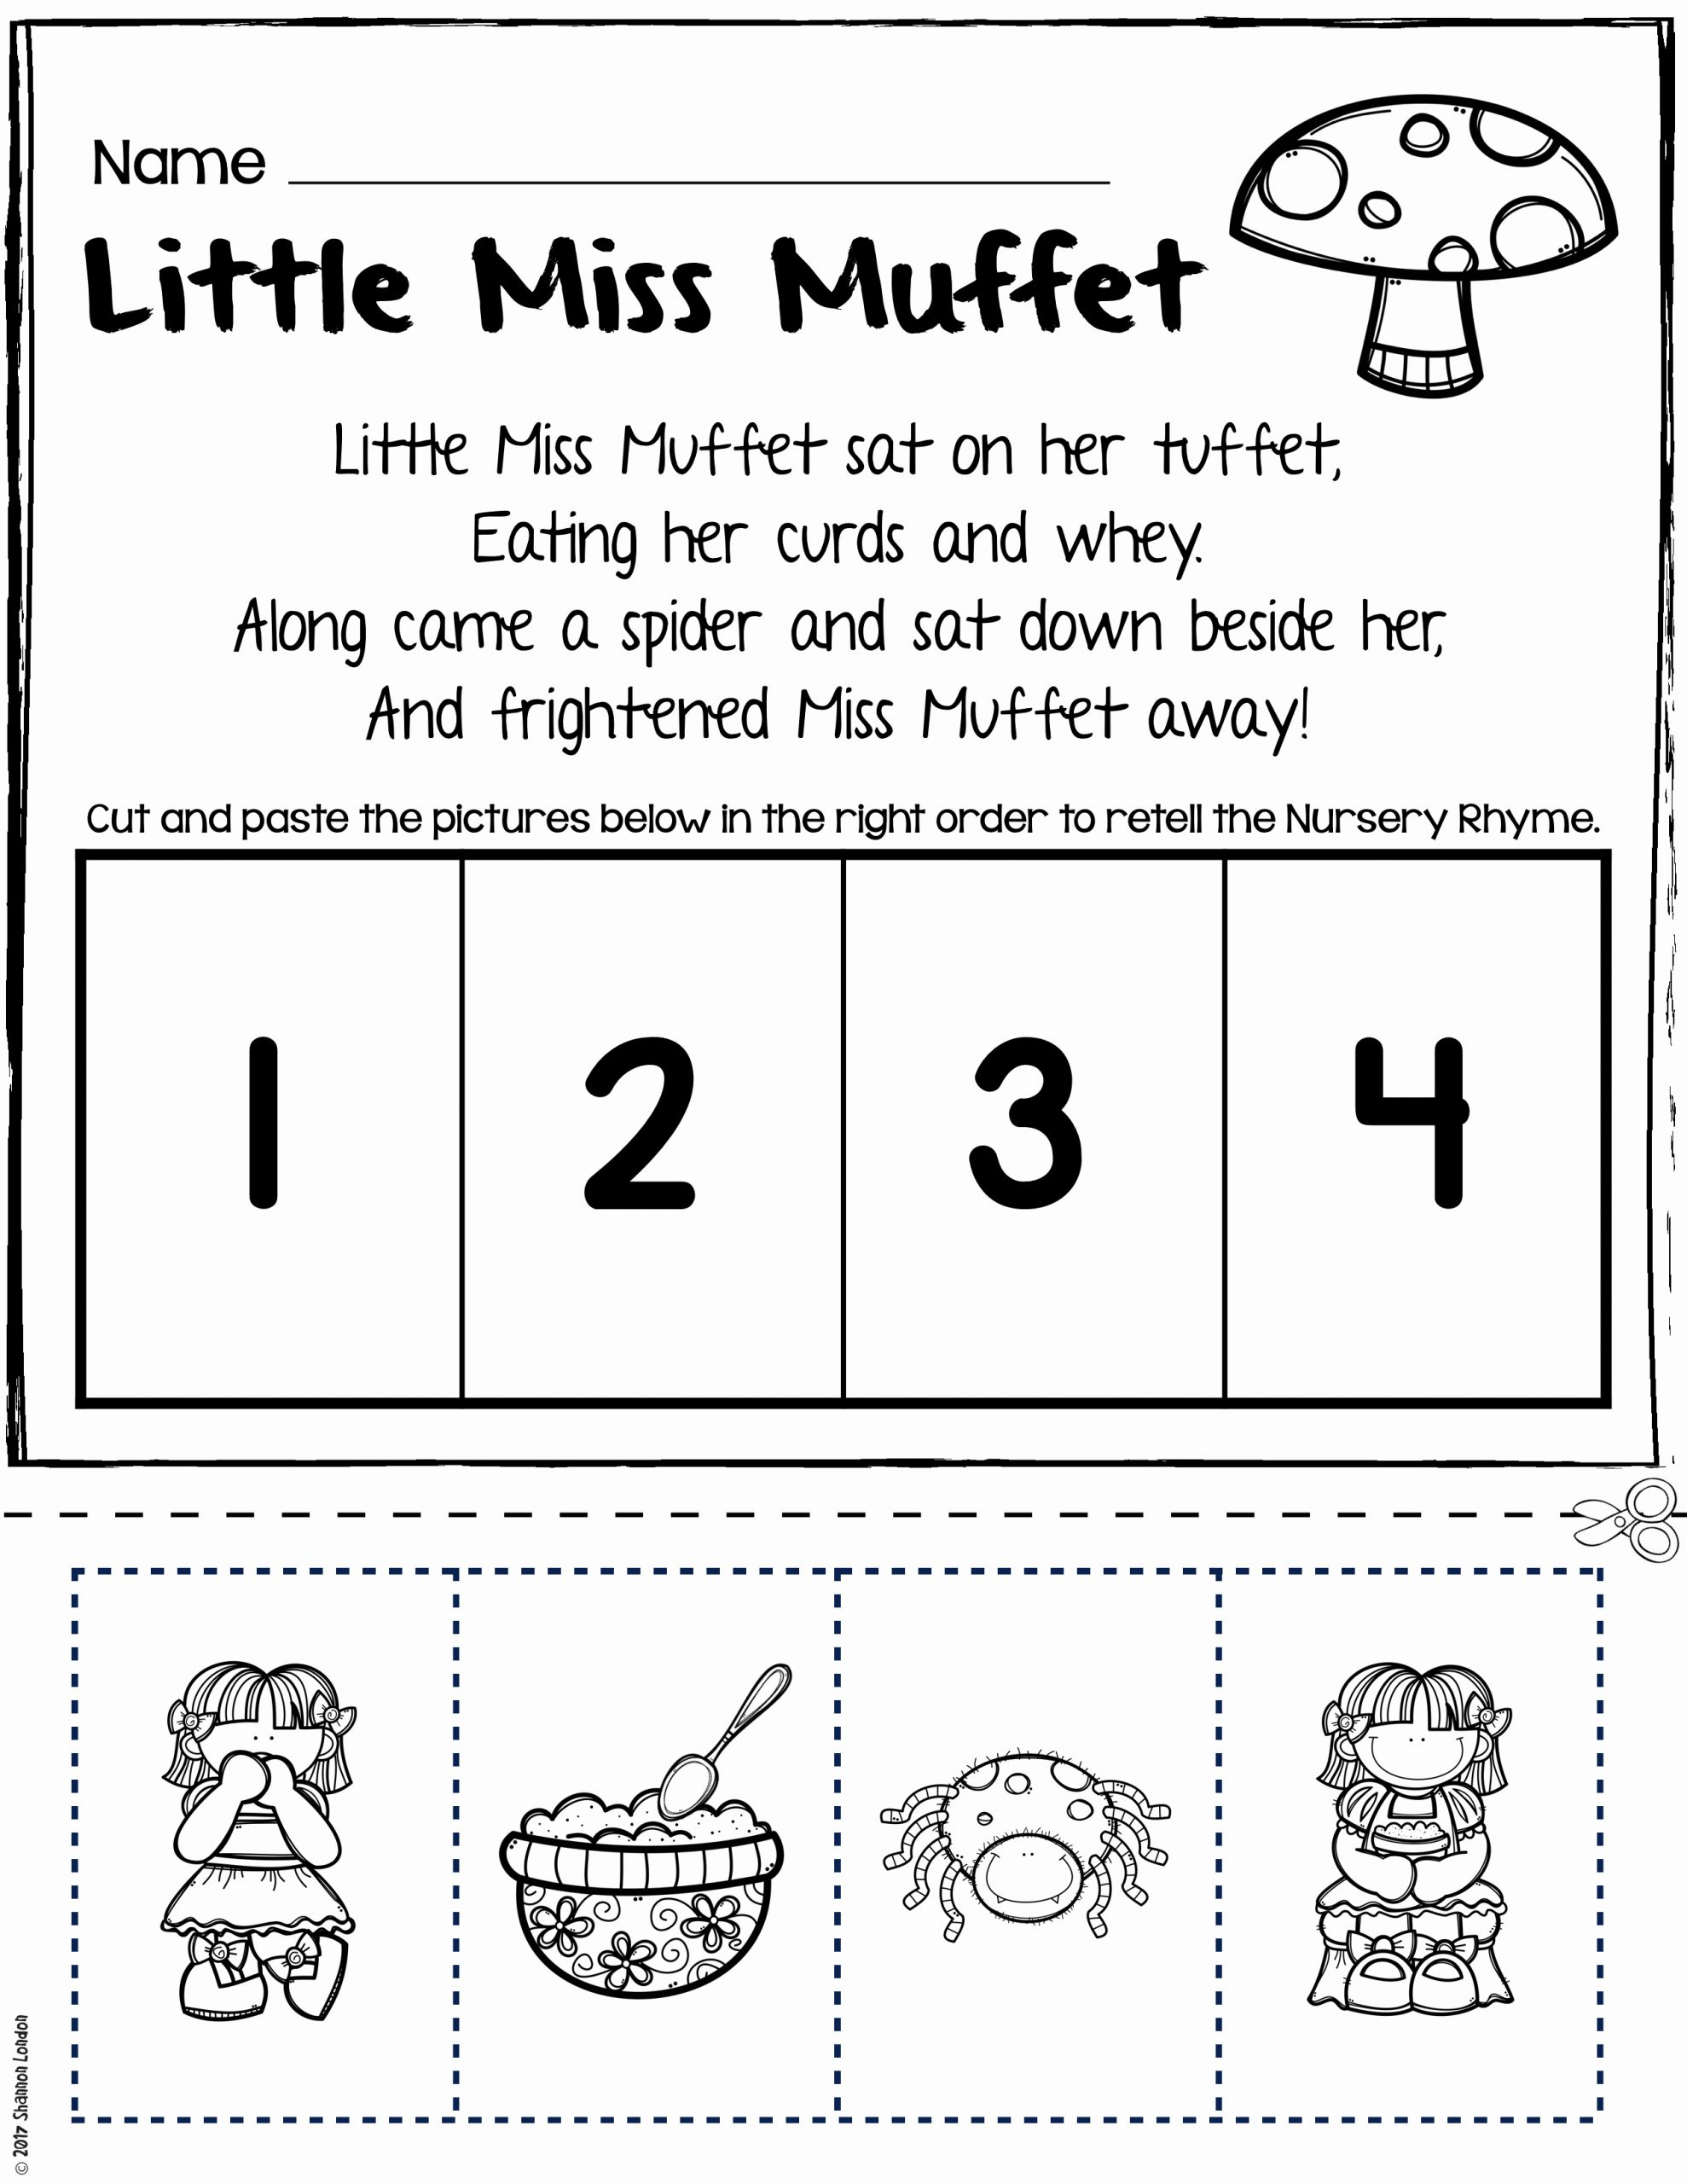 Kindergarten Sequence Worksheets New Nursery Rhymes Worksheets for Story Retelling Practice